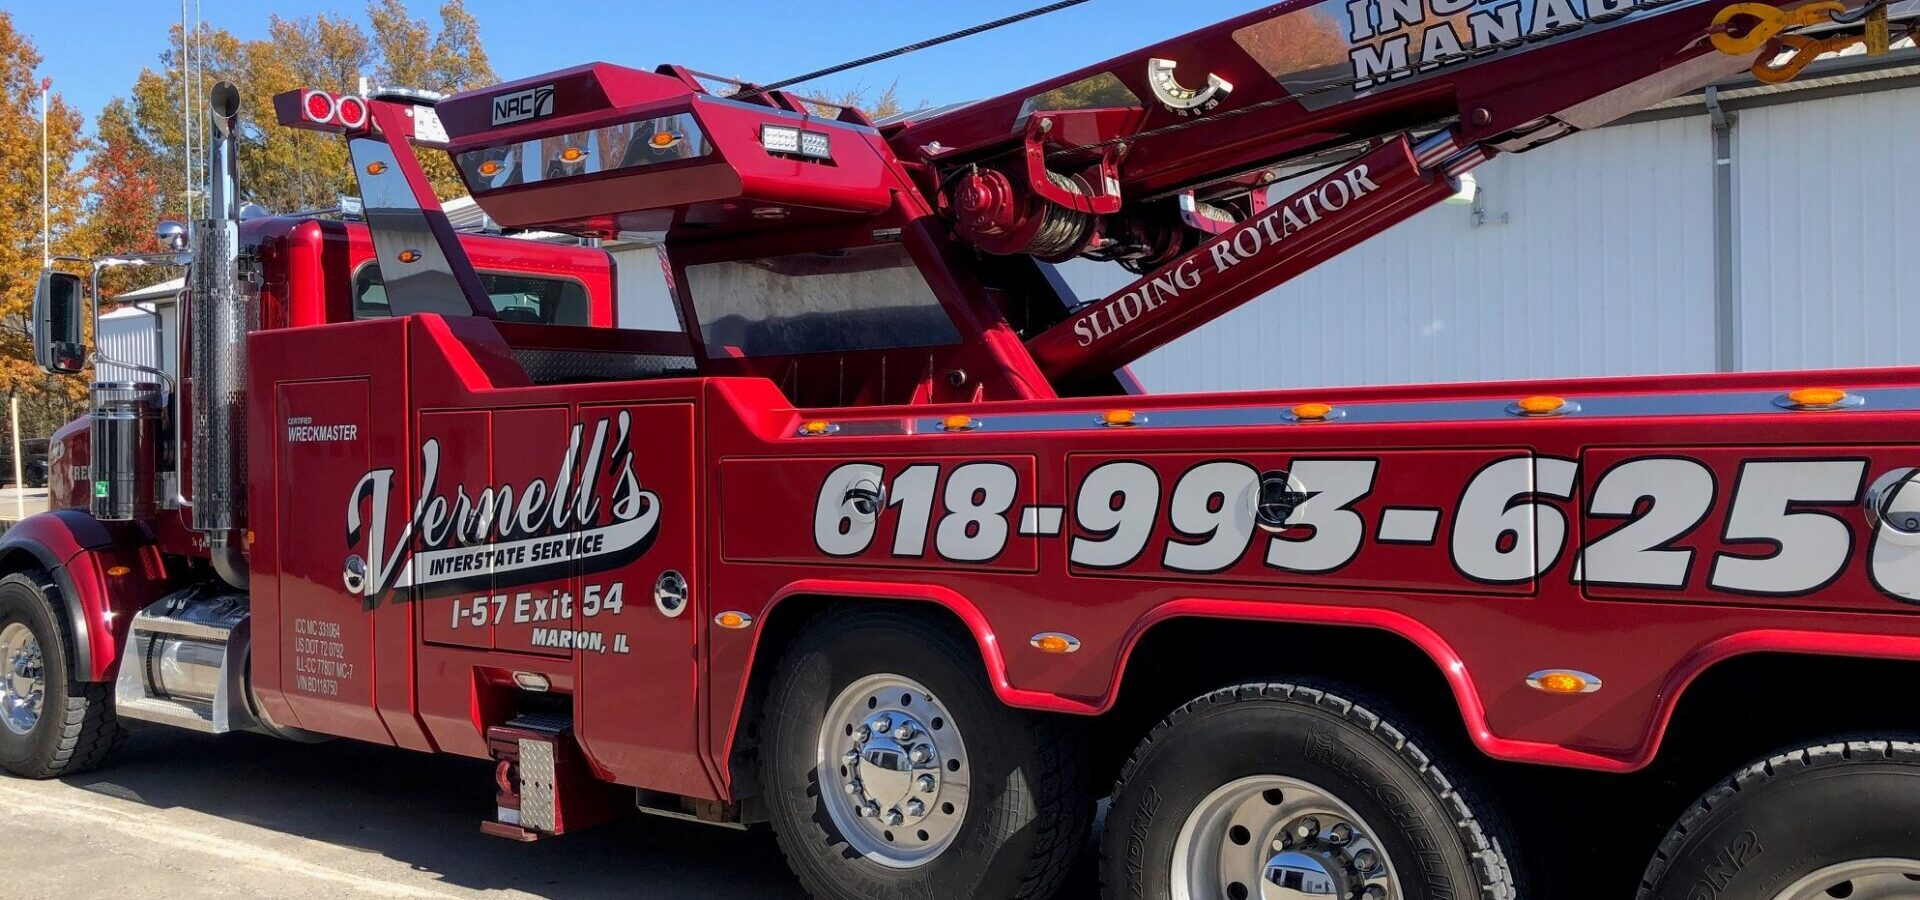 Vernell's Interstate Service heavy-duty wrecker